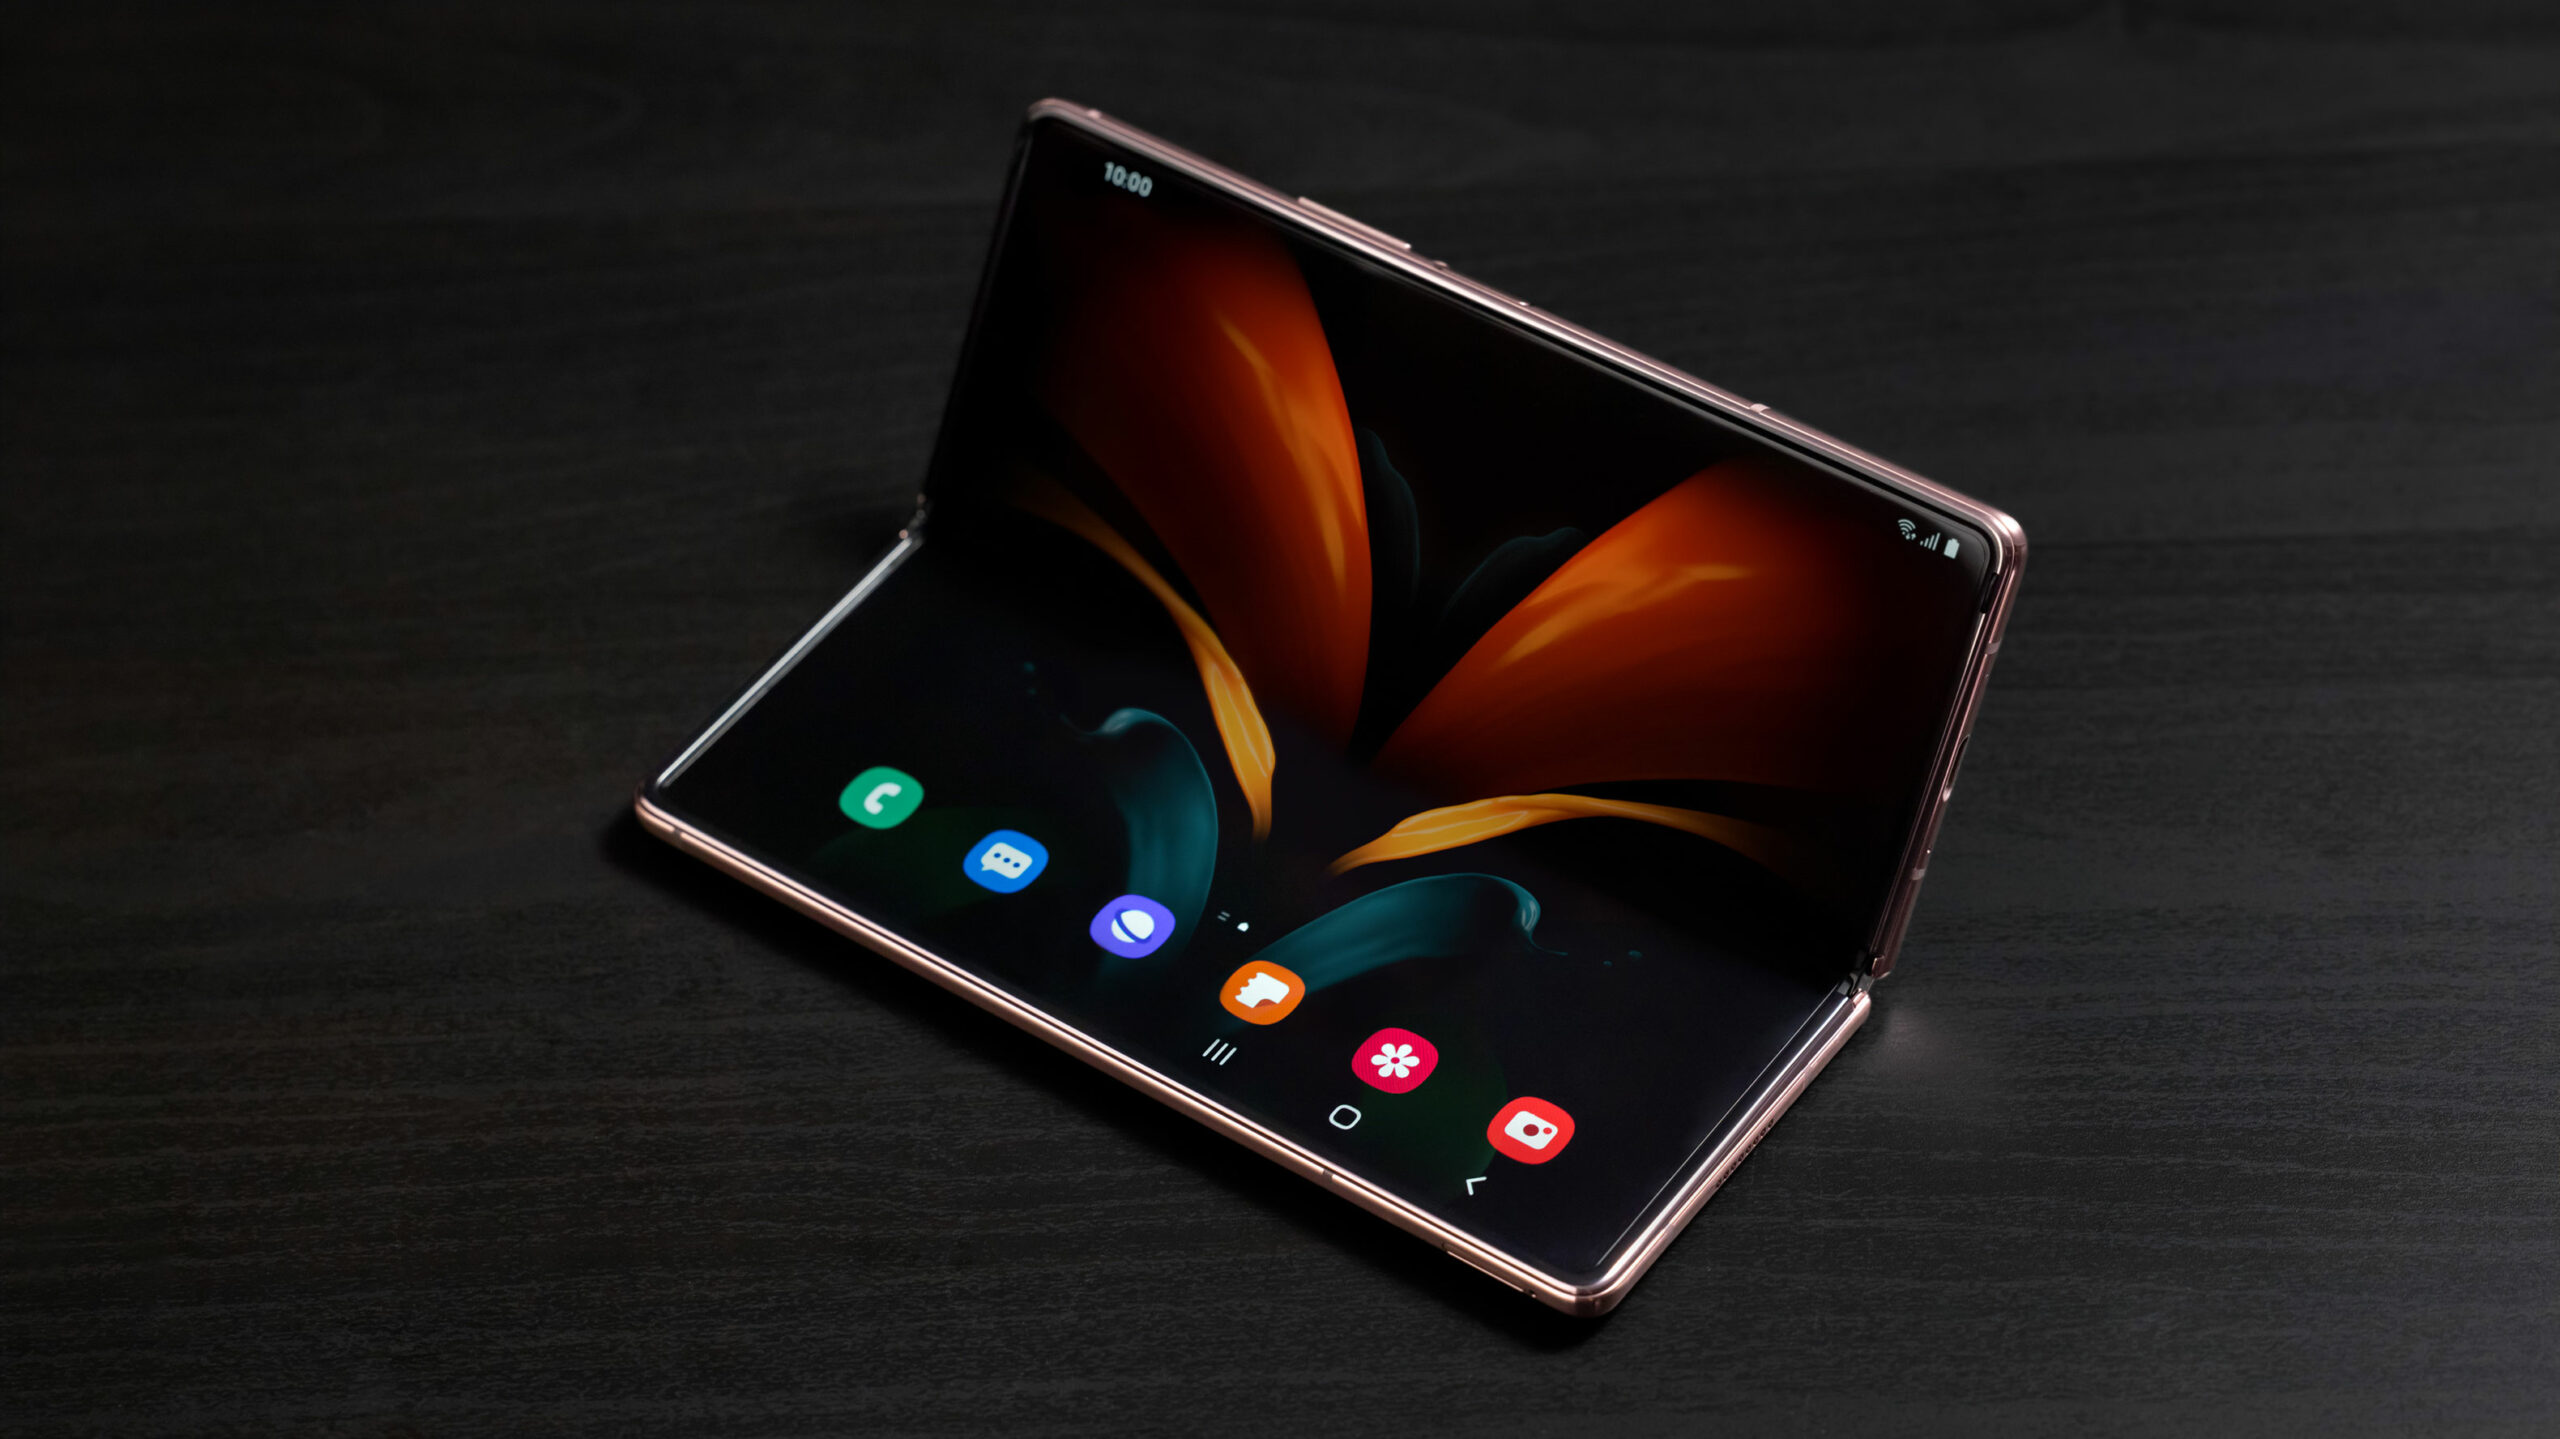 Samsung S Galaxy Z Fold 2 Could Be The First Foldable Without Compromises